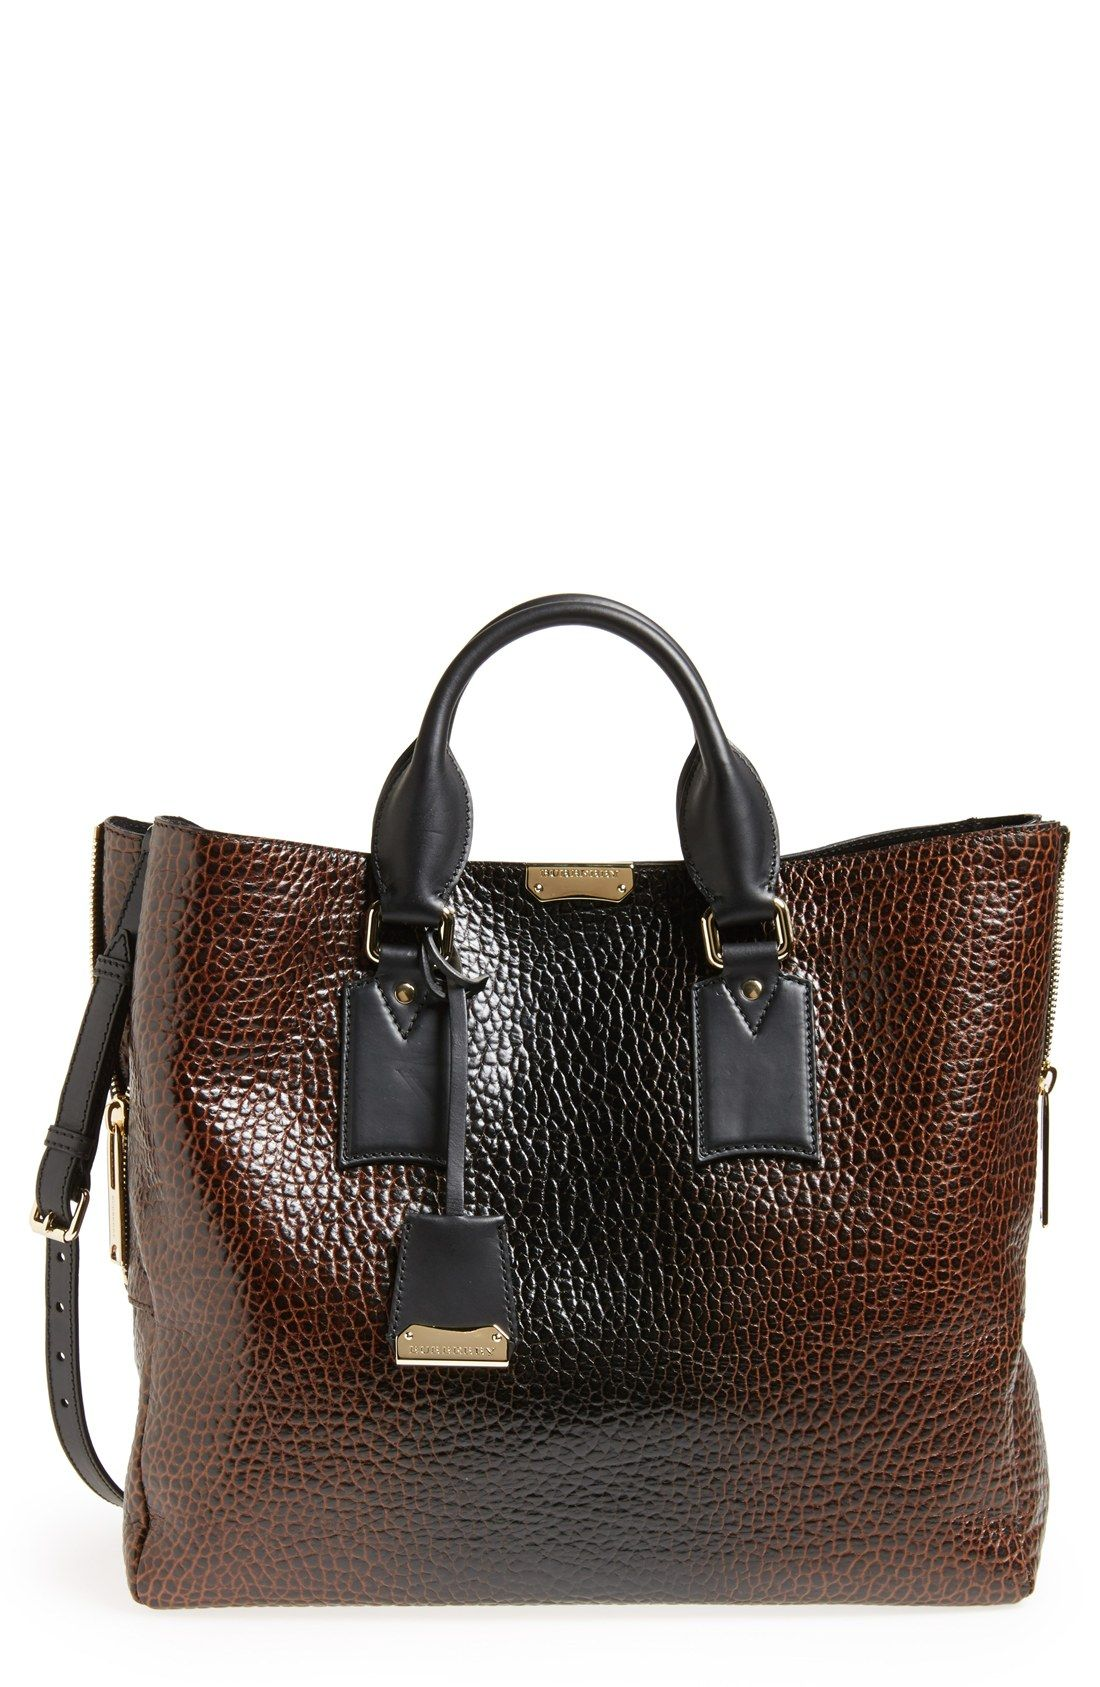 3d3dd03dab75 This Burberry  Large Callaghan  leather tote screams luxury ...